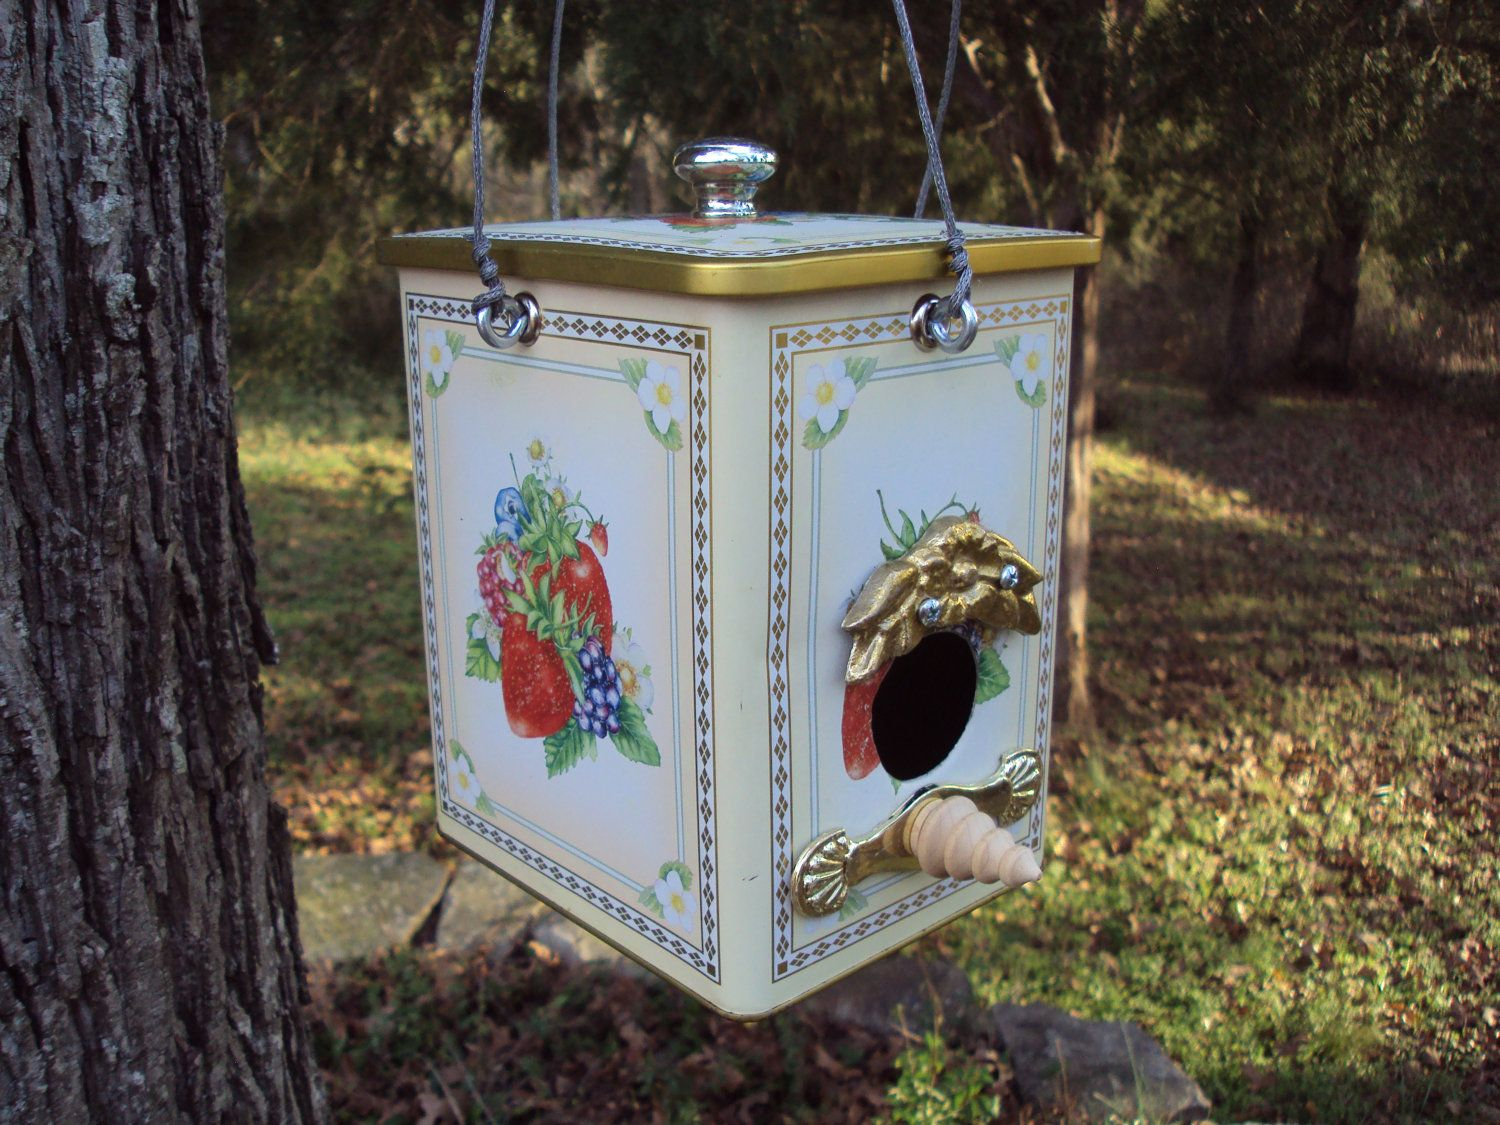 Birdhouses made from recycled materials bird houses and for Making a bird feeder out of recycled materials